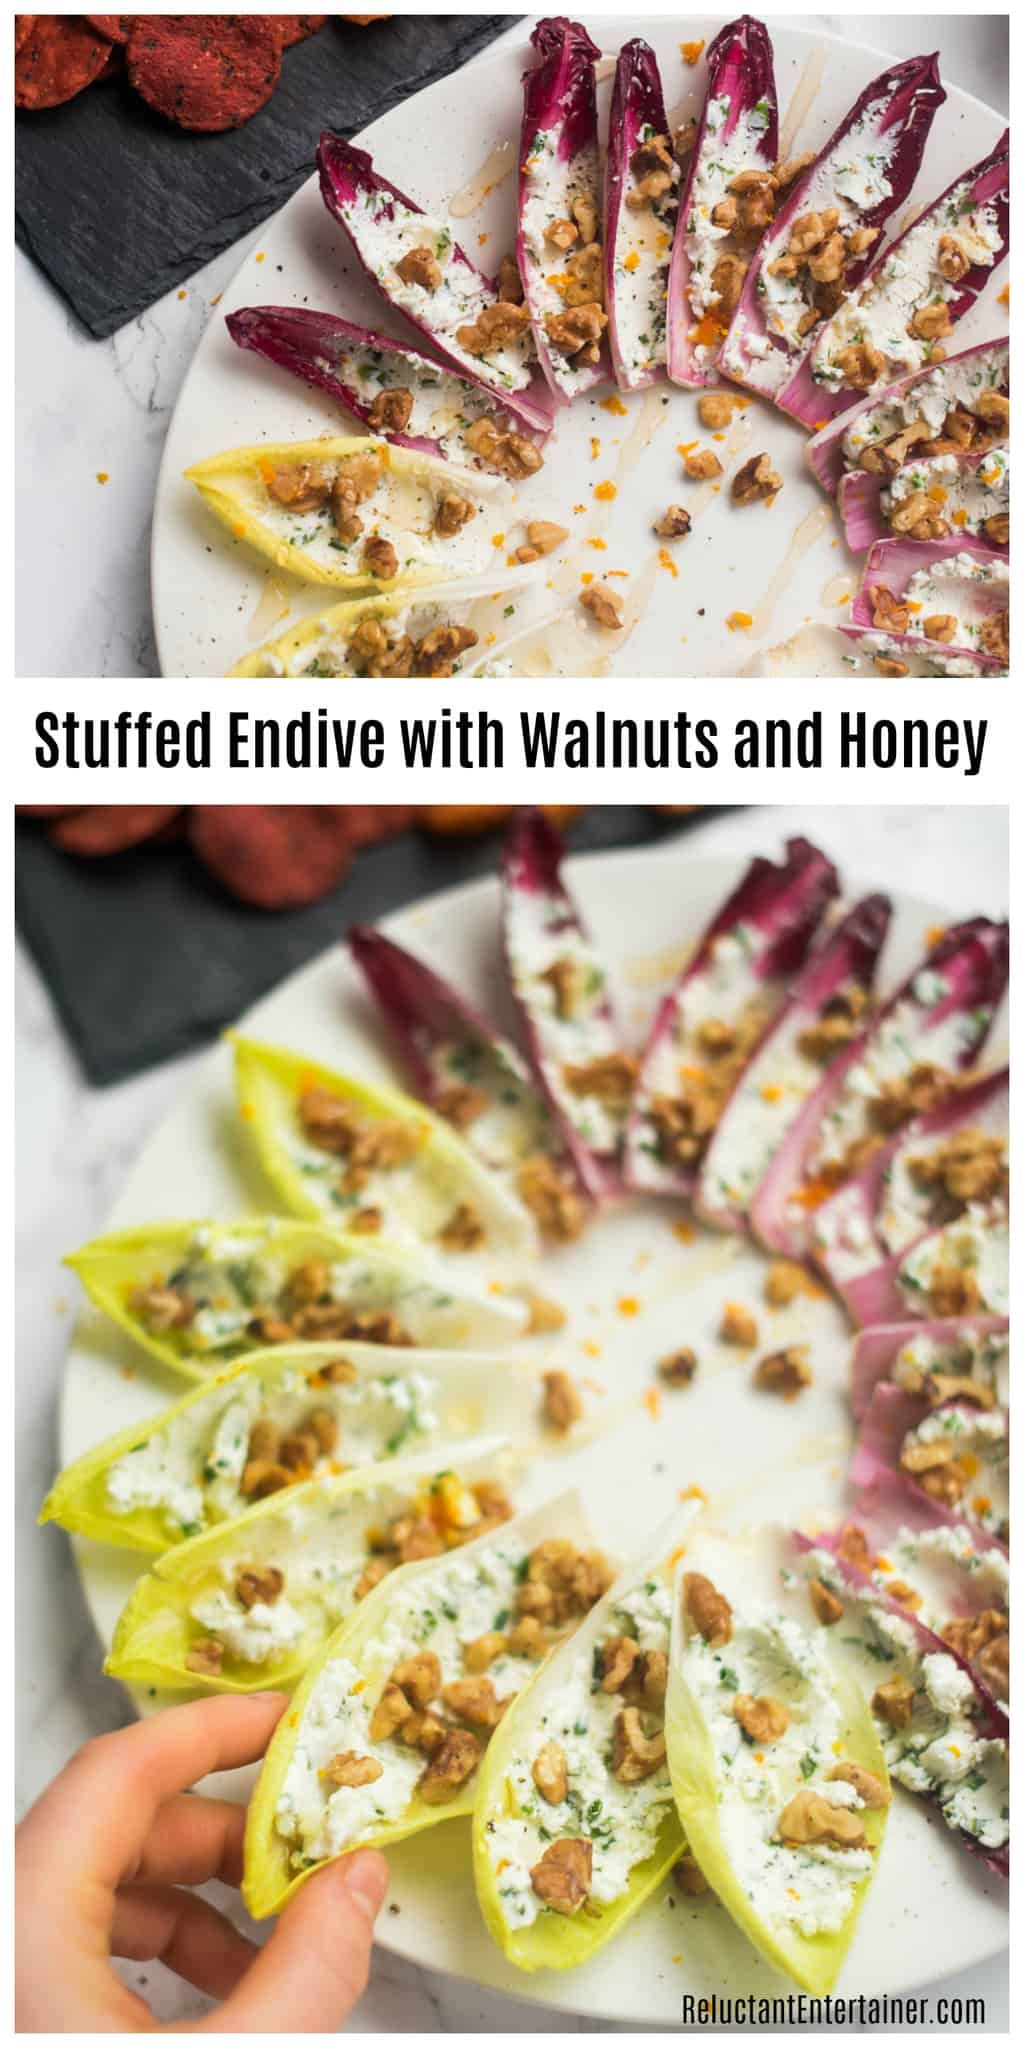 Stuffed Endive with Walnuts and Honey Recipe - Reluctant Entertainer